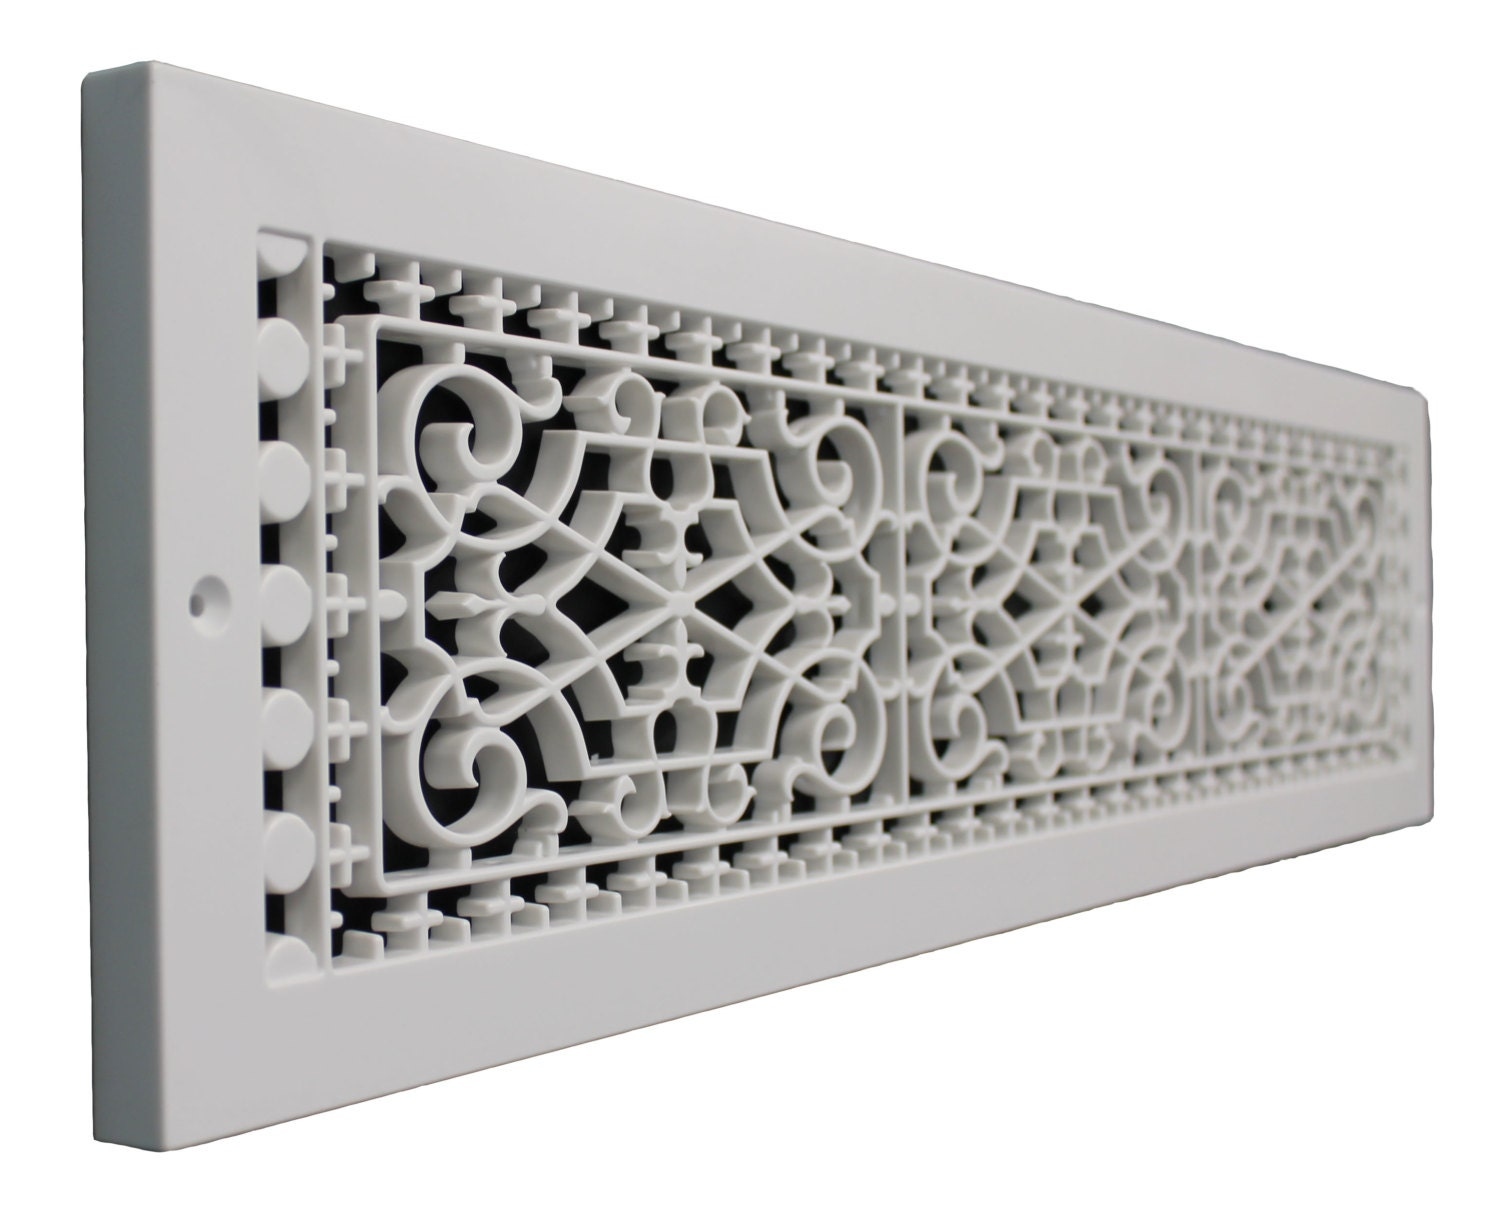 Air Ventilator Board : Victorian base board grille vent